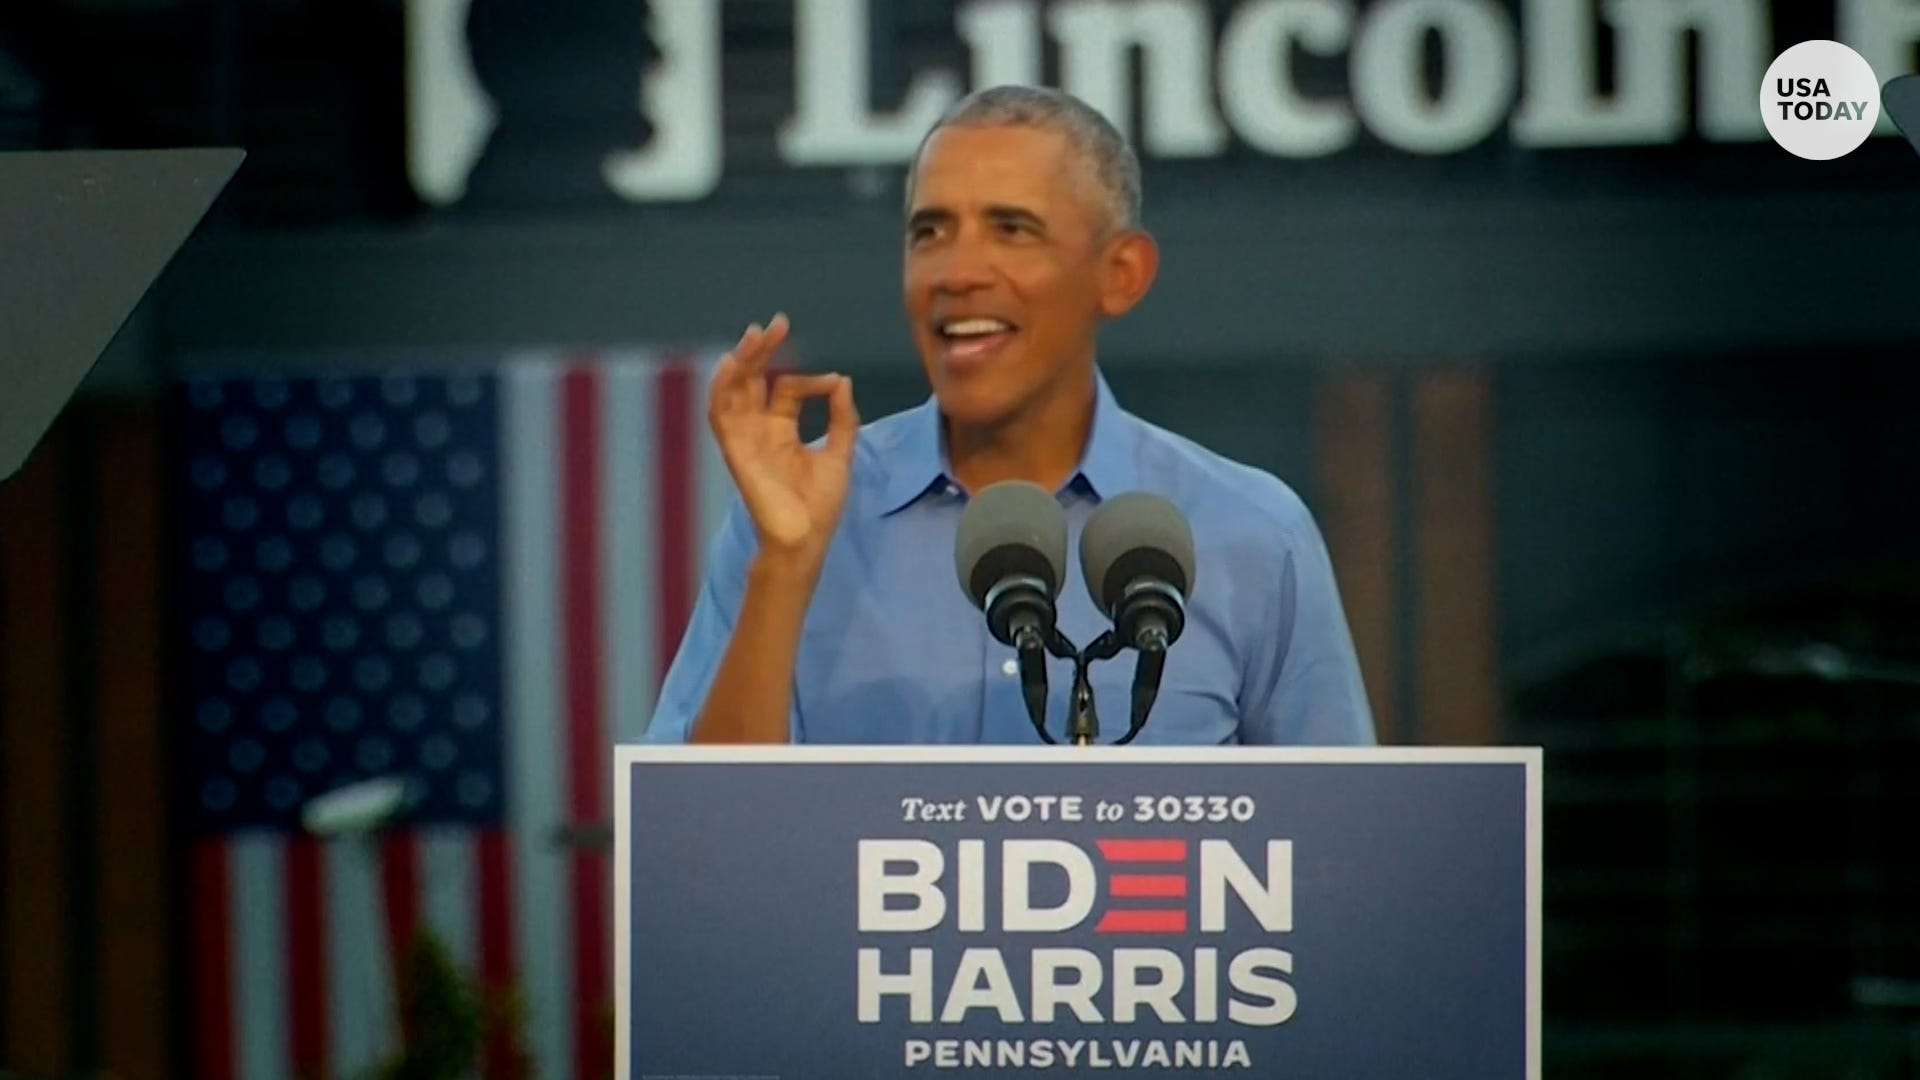 Obama, campaigns for Biden, mocks Pres. Trump's reported 'secret' Chinese bank accounts